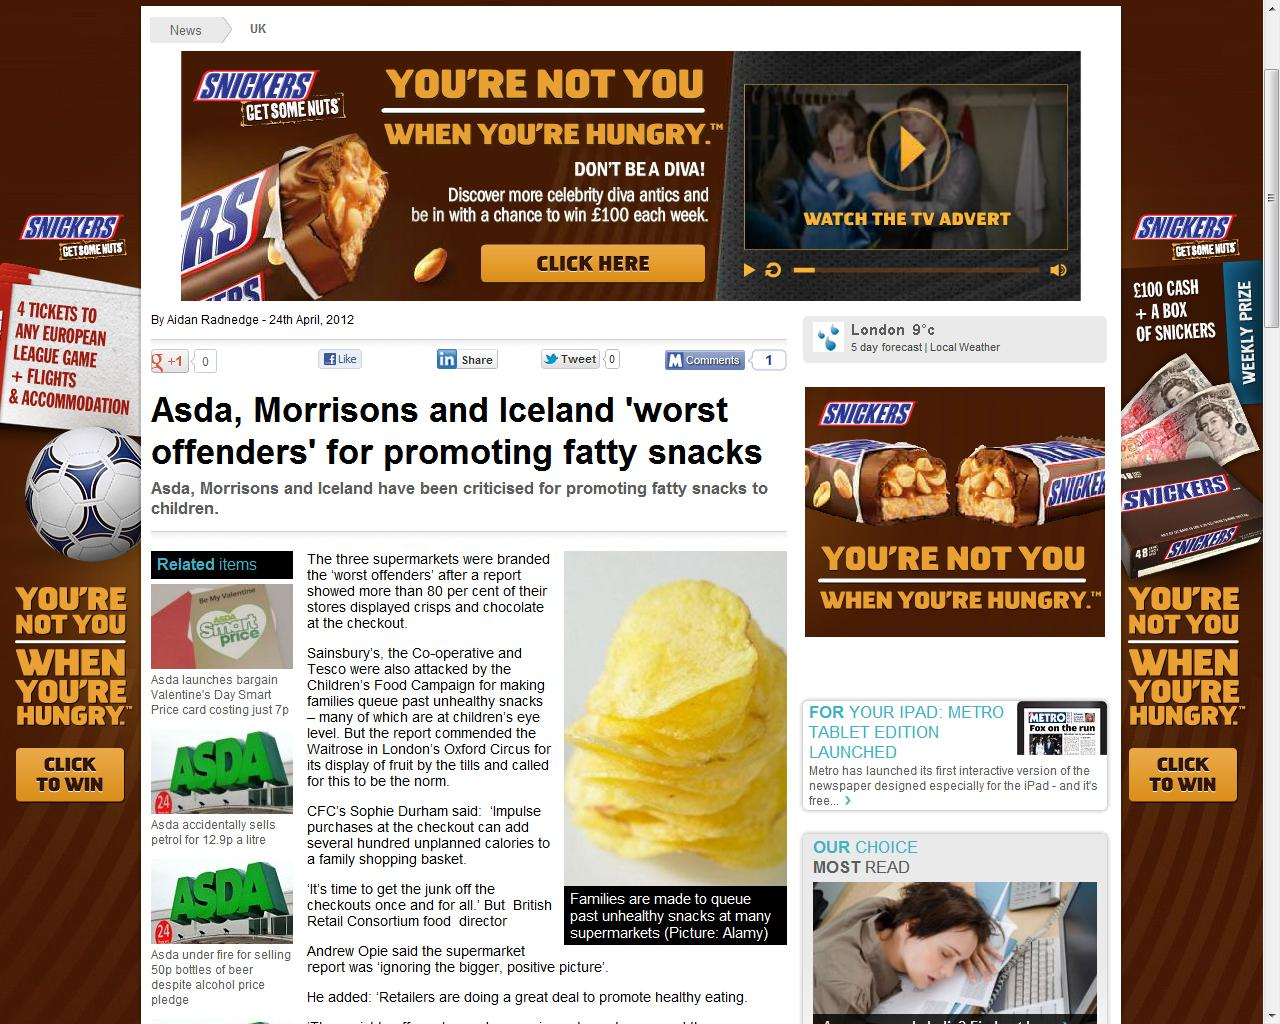 Children S Food Campaign On Twitter Comedy Snickers Ads Surround